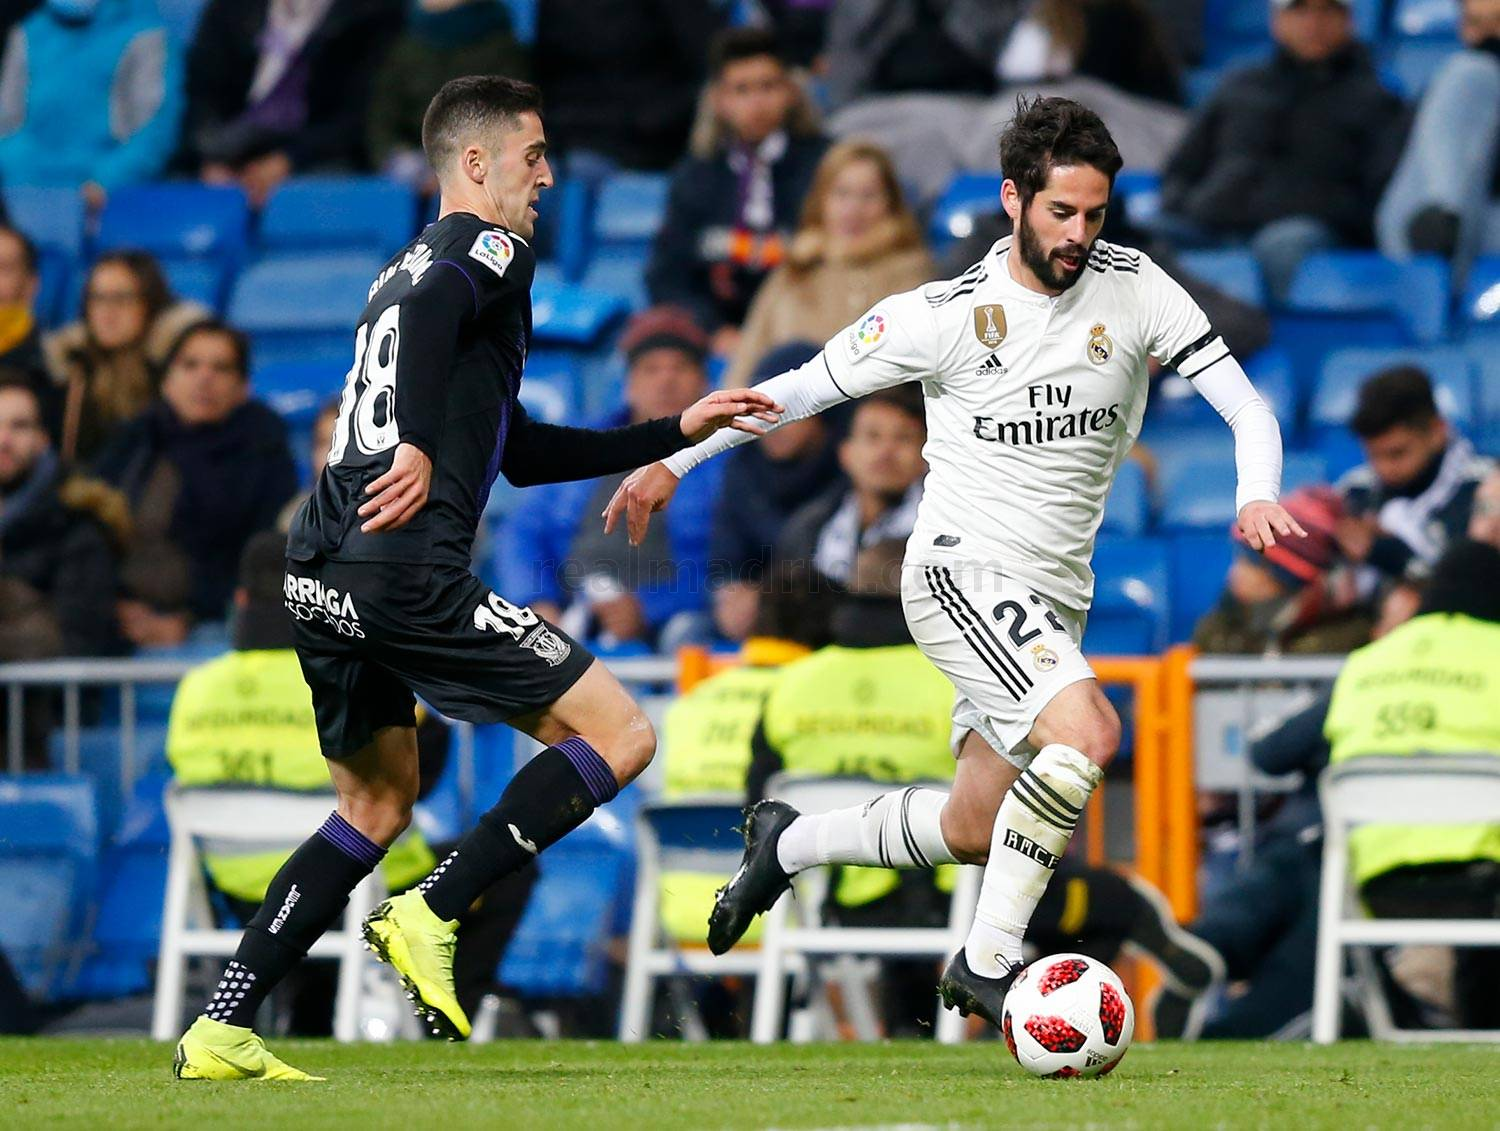 Real Madrid - Real Madrid - Leganés - 10-01-2019